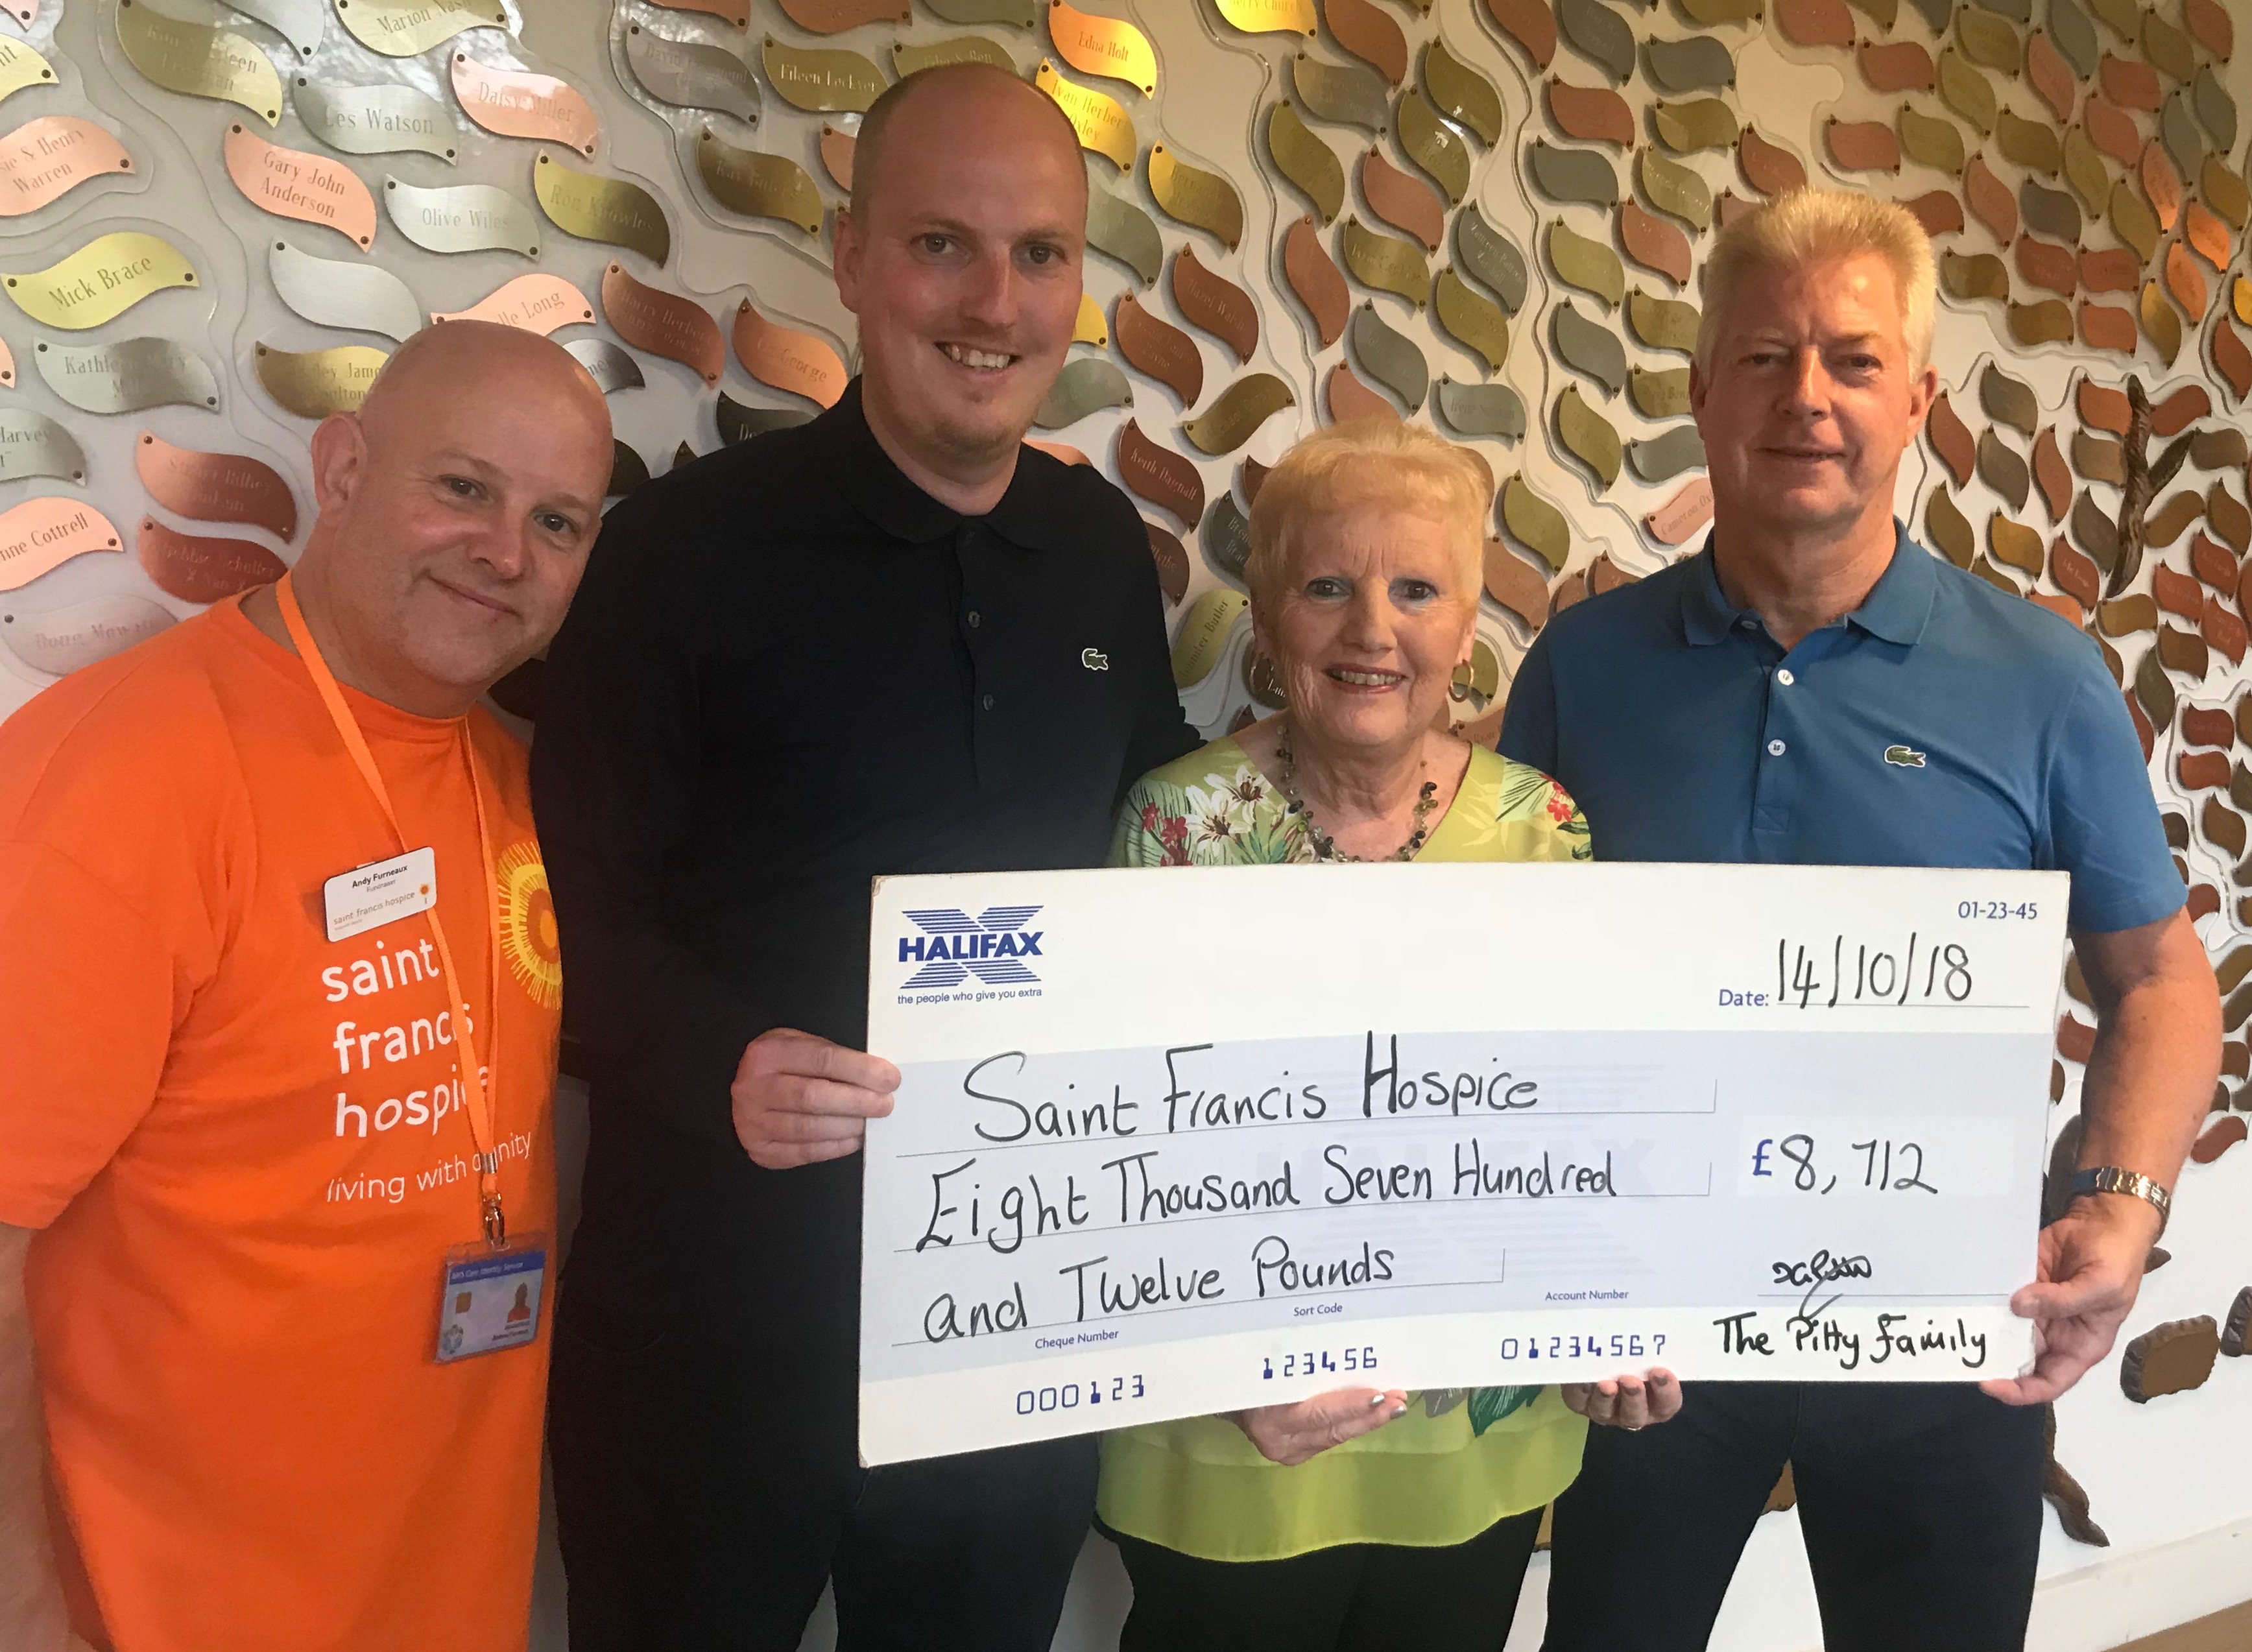 Family's impressive fundraising efforts for Saint Francis Hospice